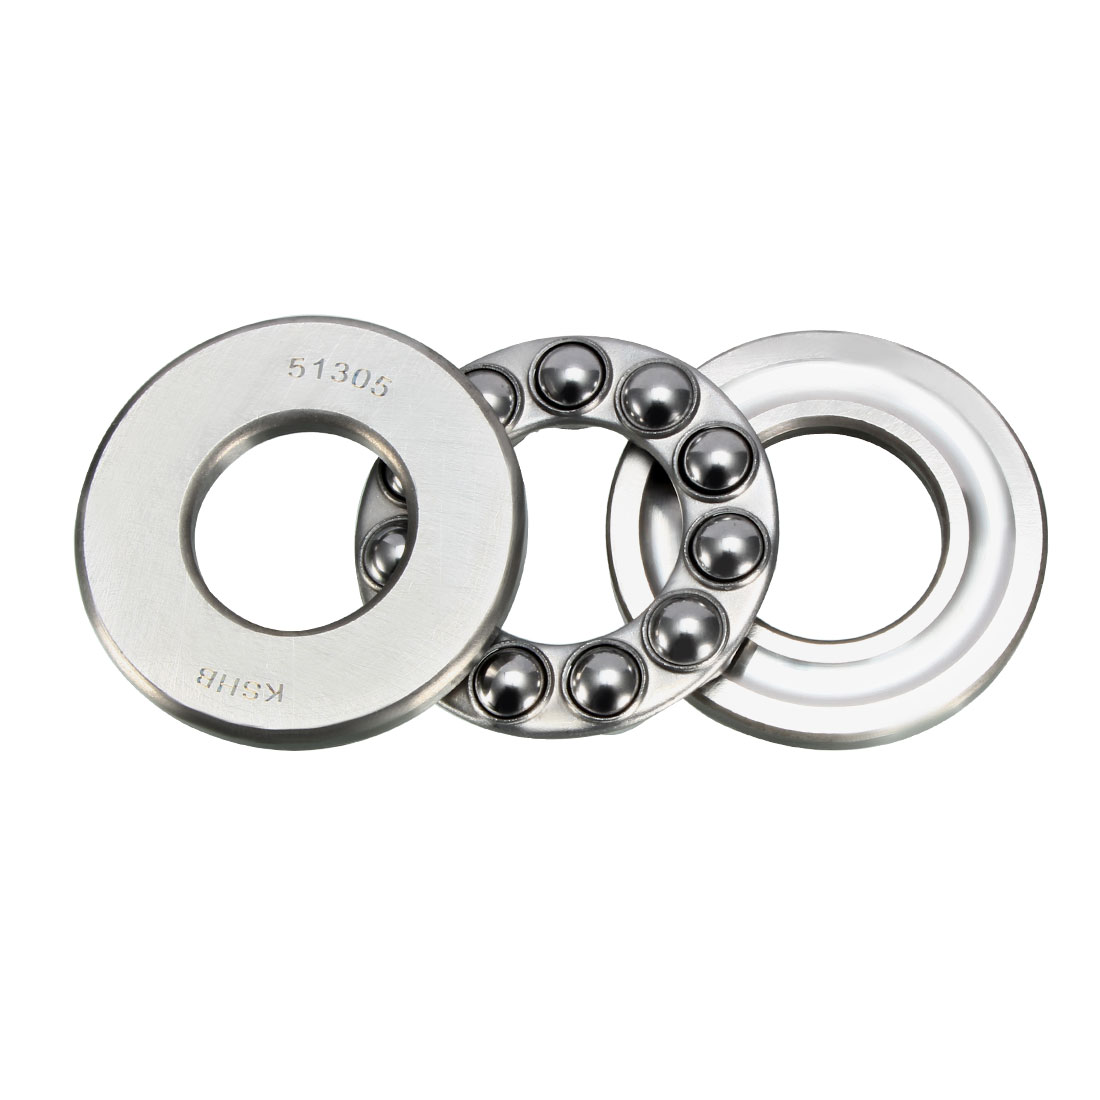 Uxcell Single Direction Thrust Ball Bearings 51104/51105 20mm X 35mm X 10mm/25mm X 42mm X 11mm Chrome Steel Wear Resistance